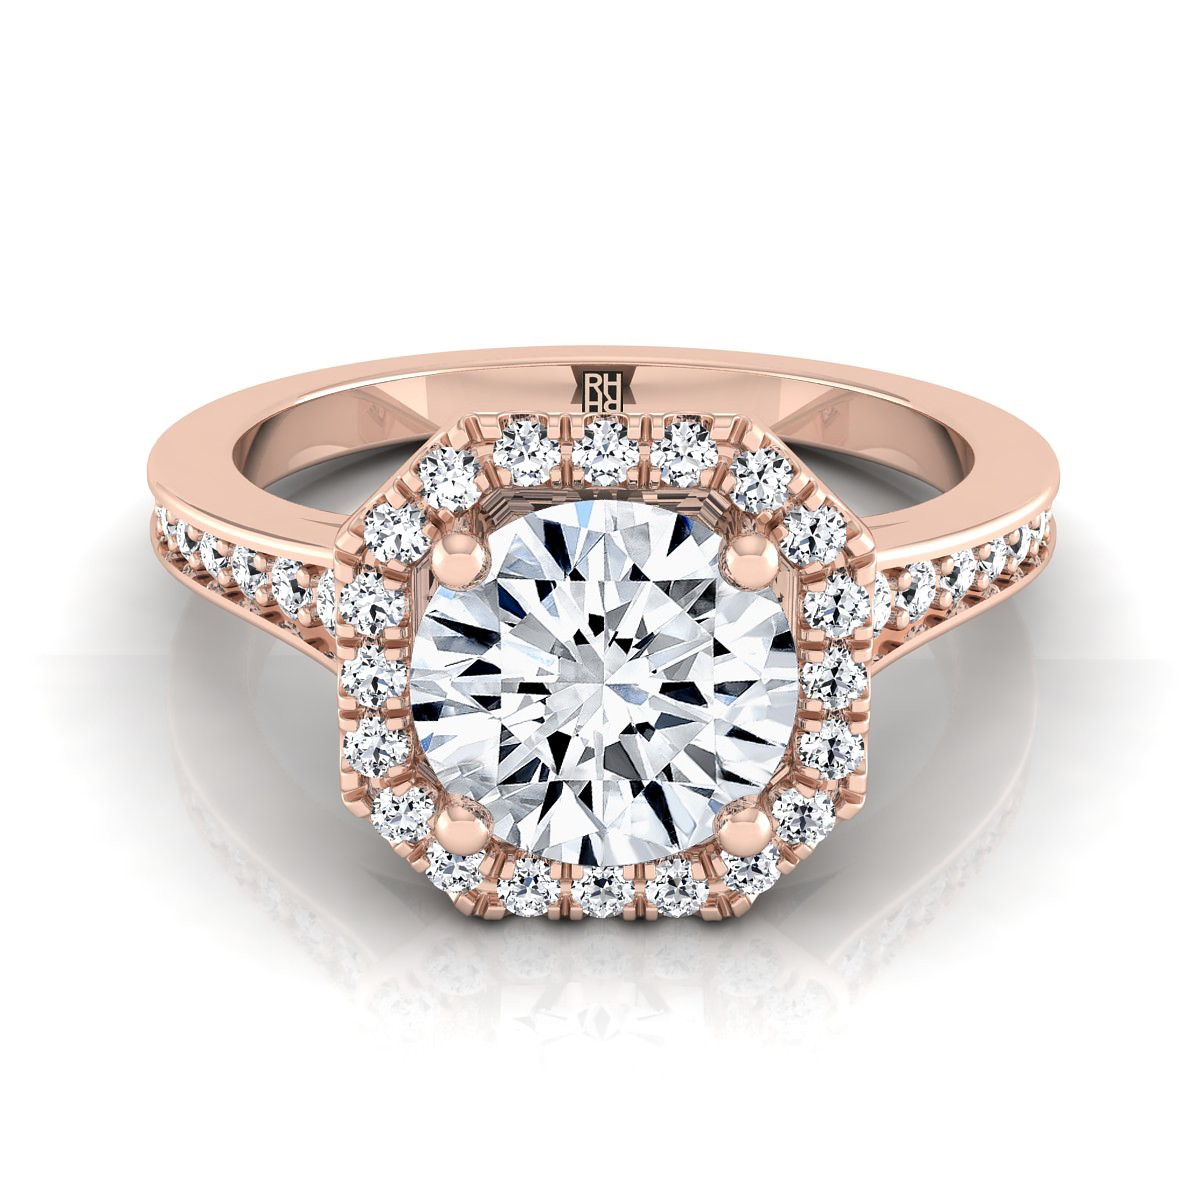 diamond engagement ring with octagon halo frame with pave shank in 14k rose gold 13 cttw - Rose Wedding Rings